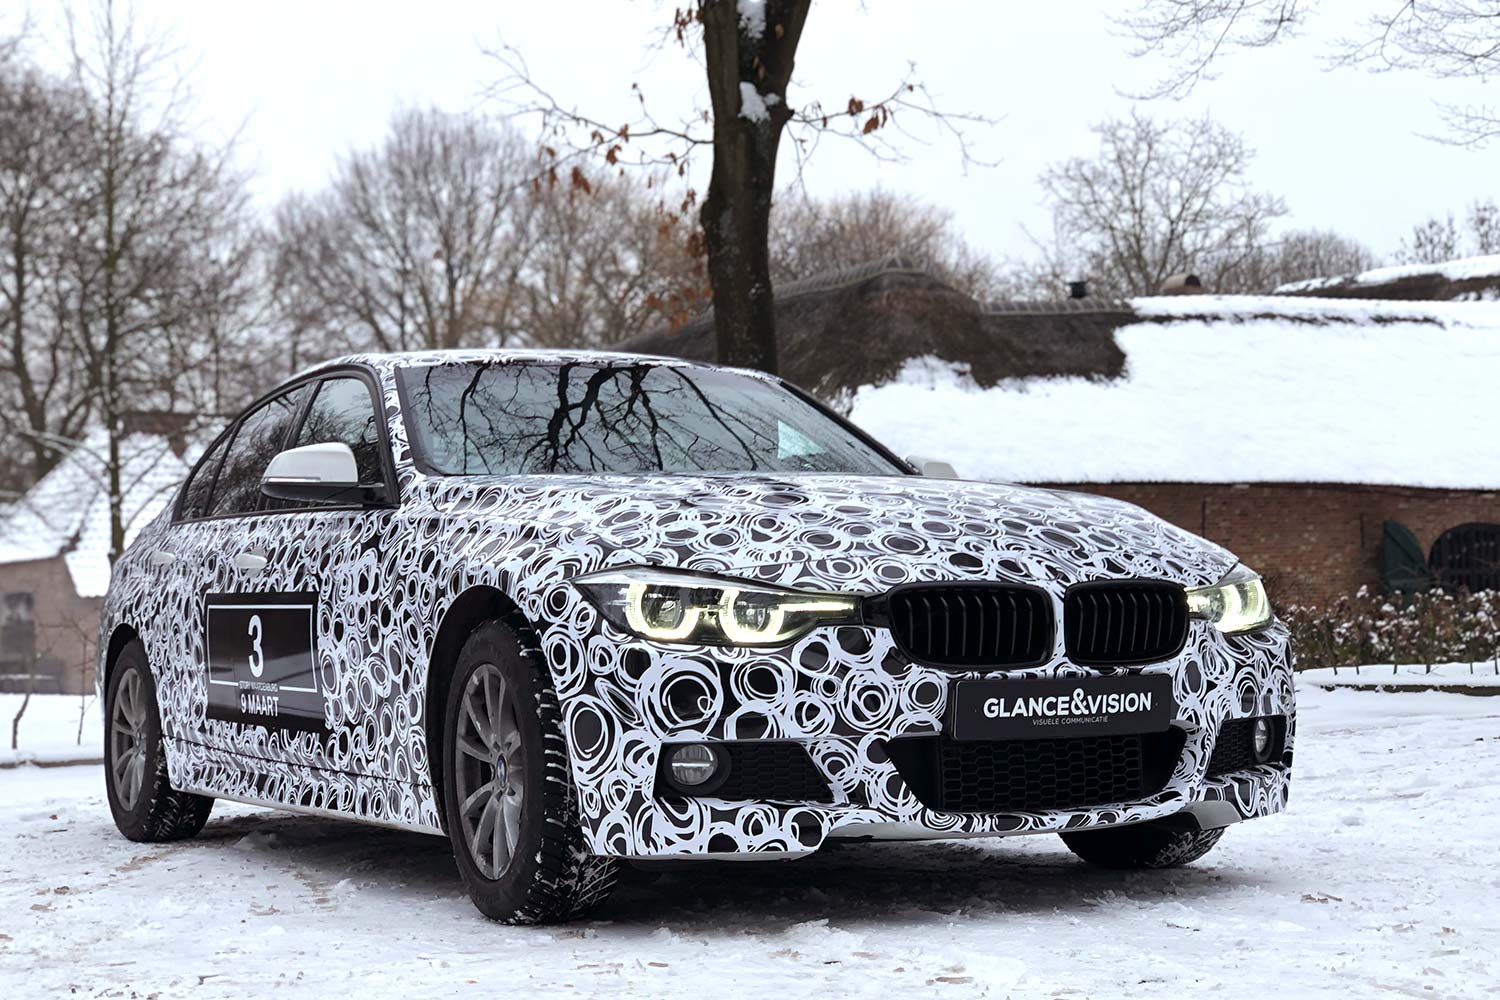 Carwarp BMW spywrap Glance & Vision